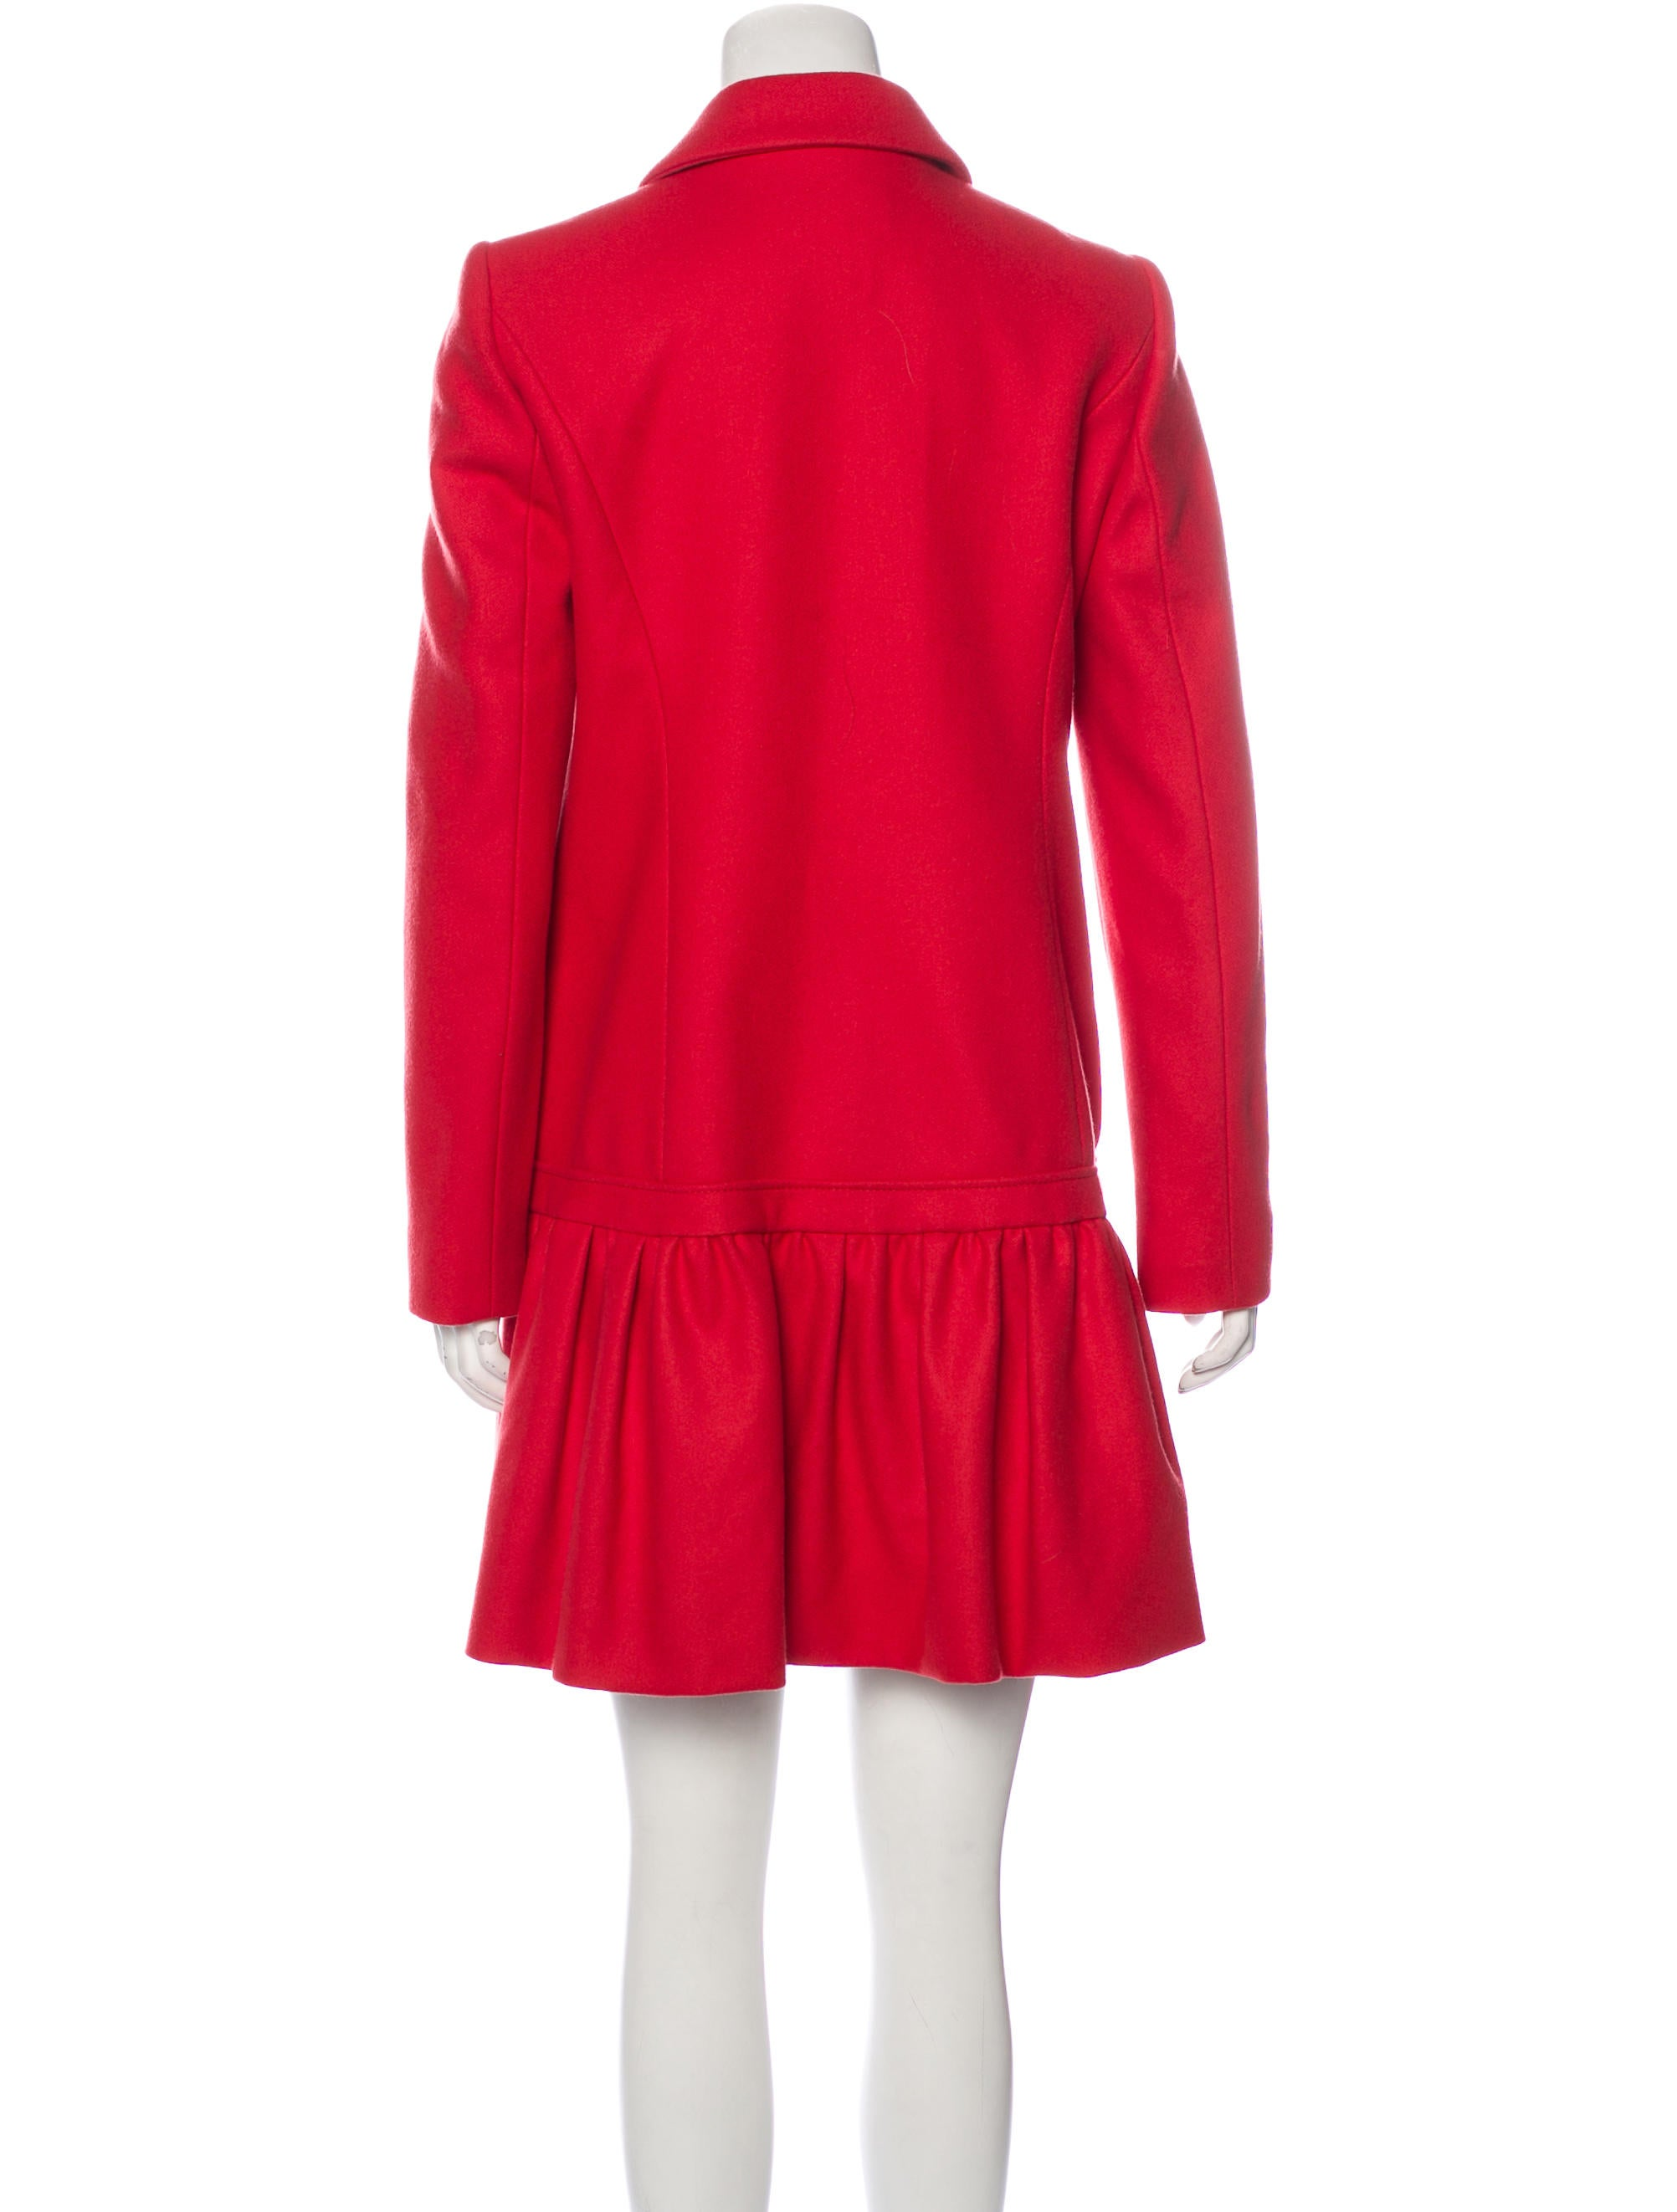 Red Valentino Ruffled Wool Coat Clothing WRE27854  : WRE278543enlarged from www.therealreal.com size 2004 x 2644 jpeg 206kB